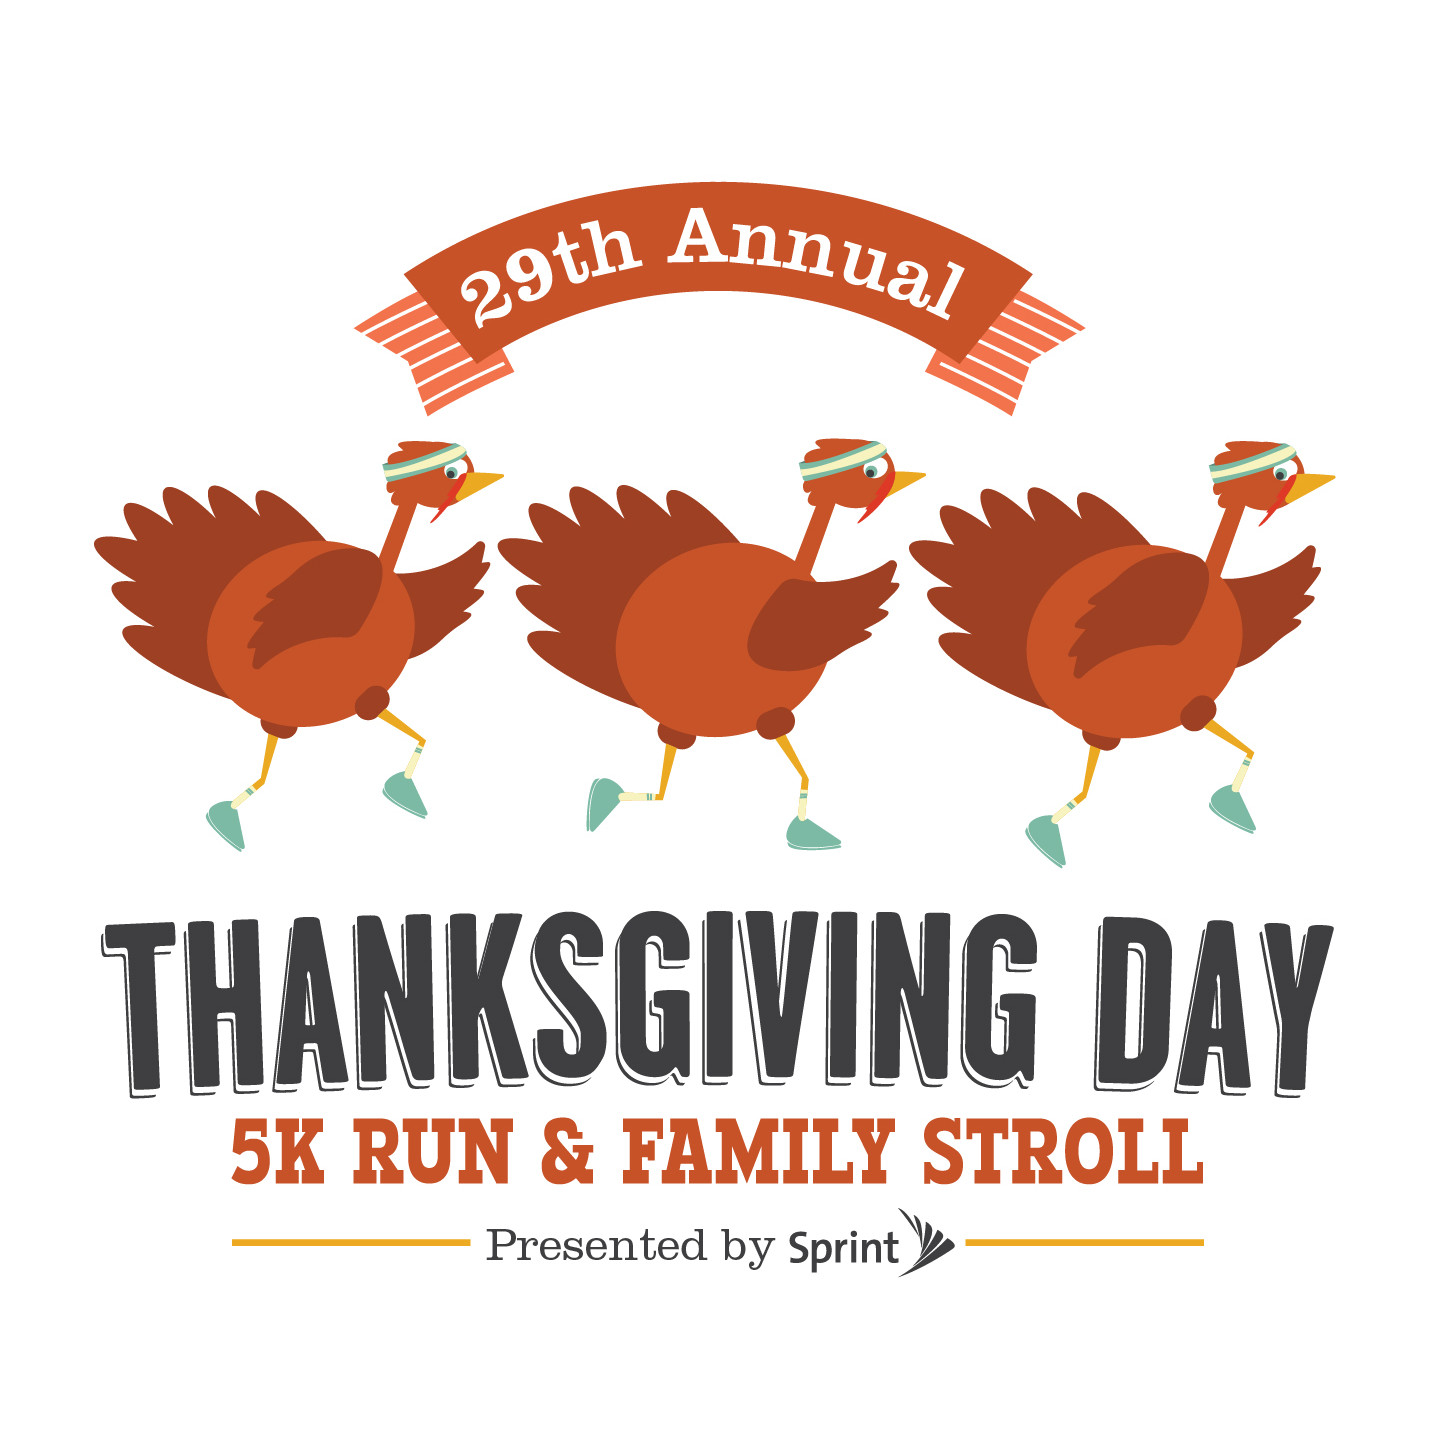 2018 29th annual thanksgiving day 5k run family stroll race roster